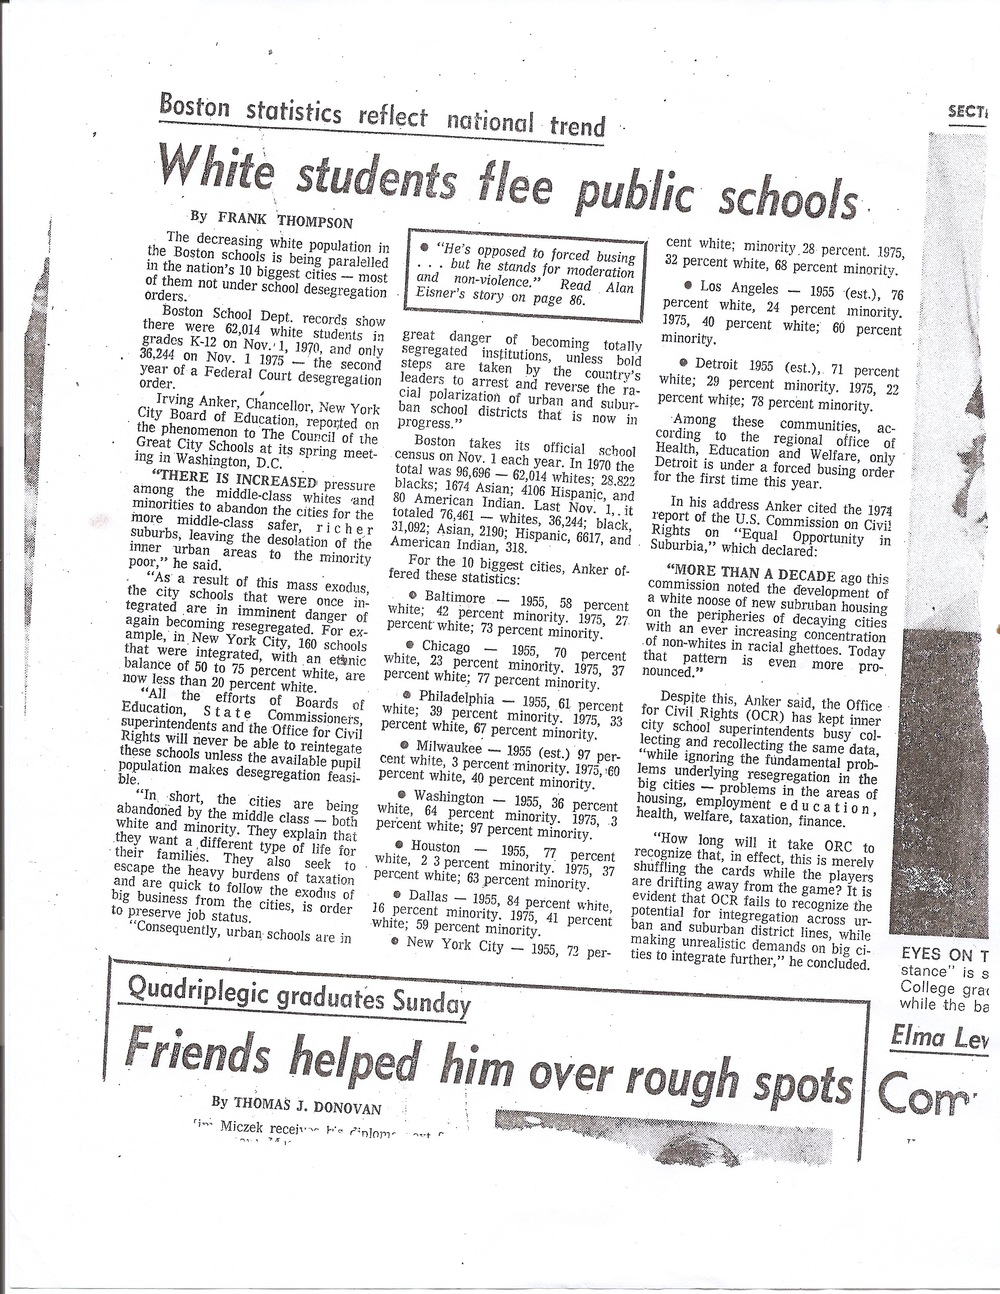 "Joe Moakley/Busing Papers, Suffolk University. This newspaper article answers one of our main questions, ""How did busing affect Boston?"" This article shows how students were fleeing schools and families were not cooperating with black students coming into the schools. It shows chaos within Boston Public Schools because of the racial tension around busing."